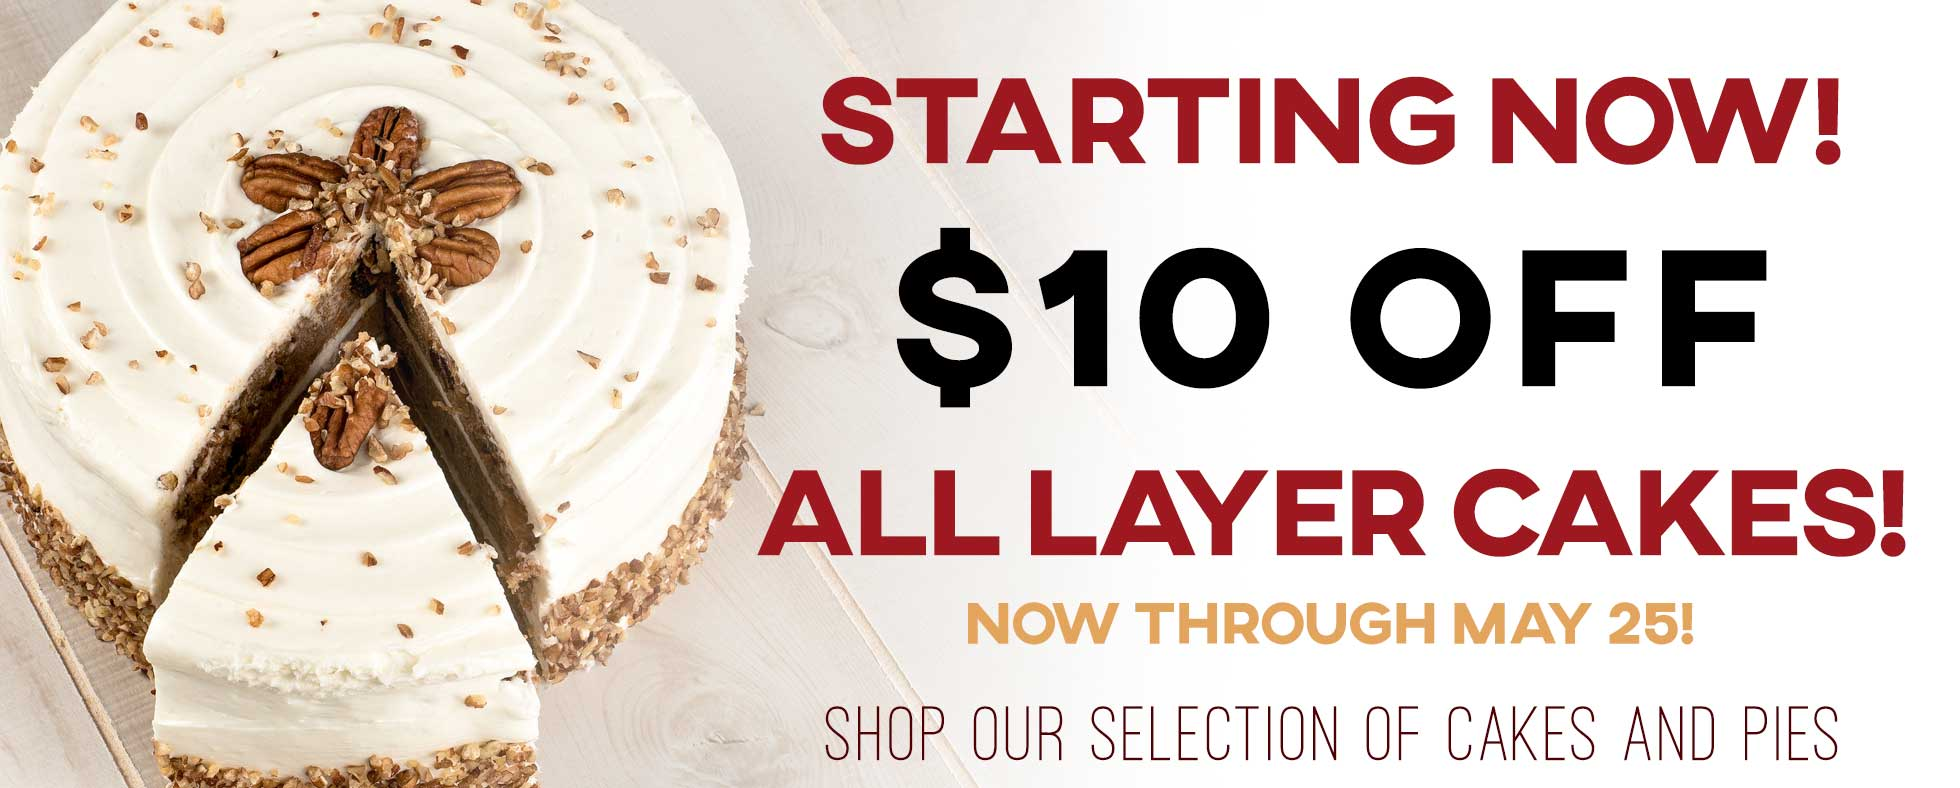 Gourmet Layer Cakes $10 Off